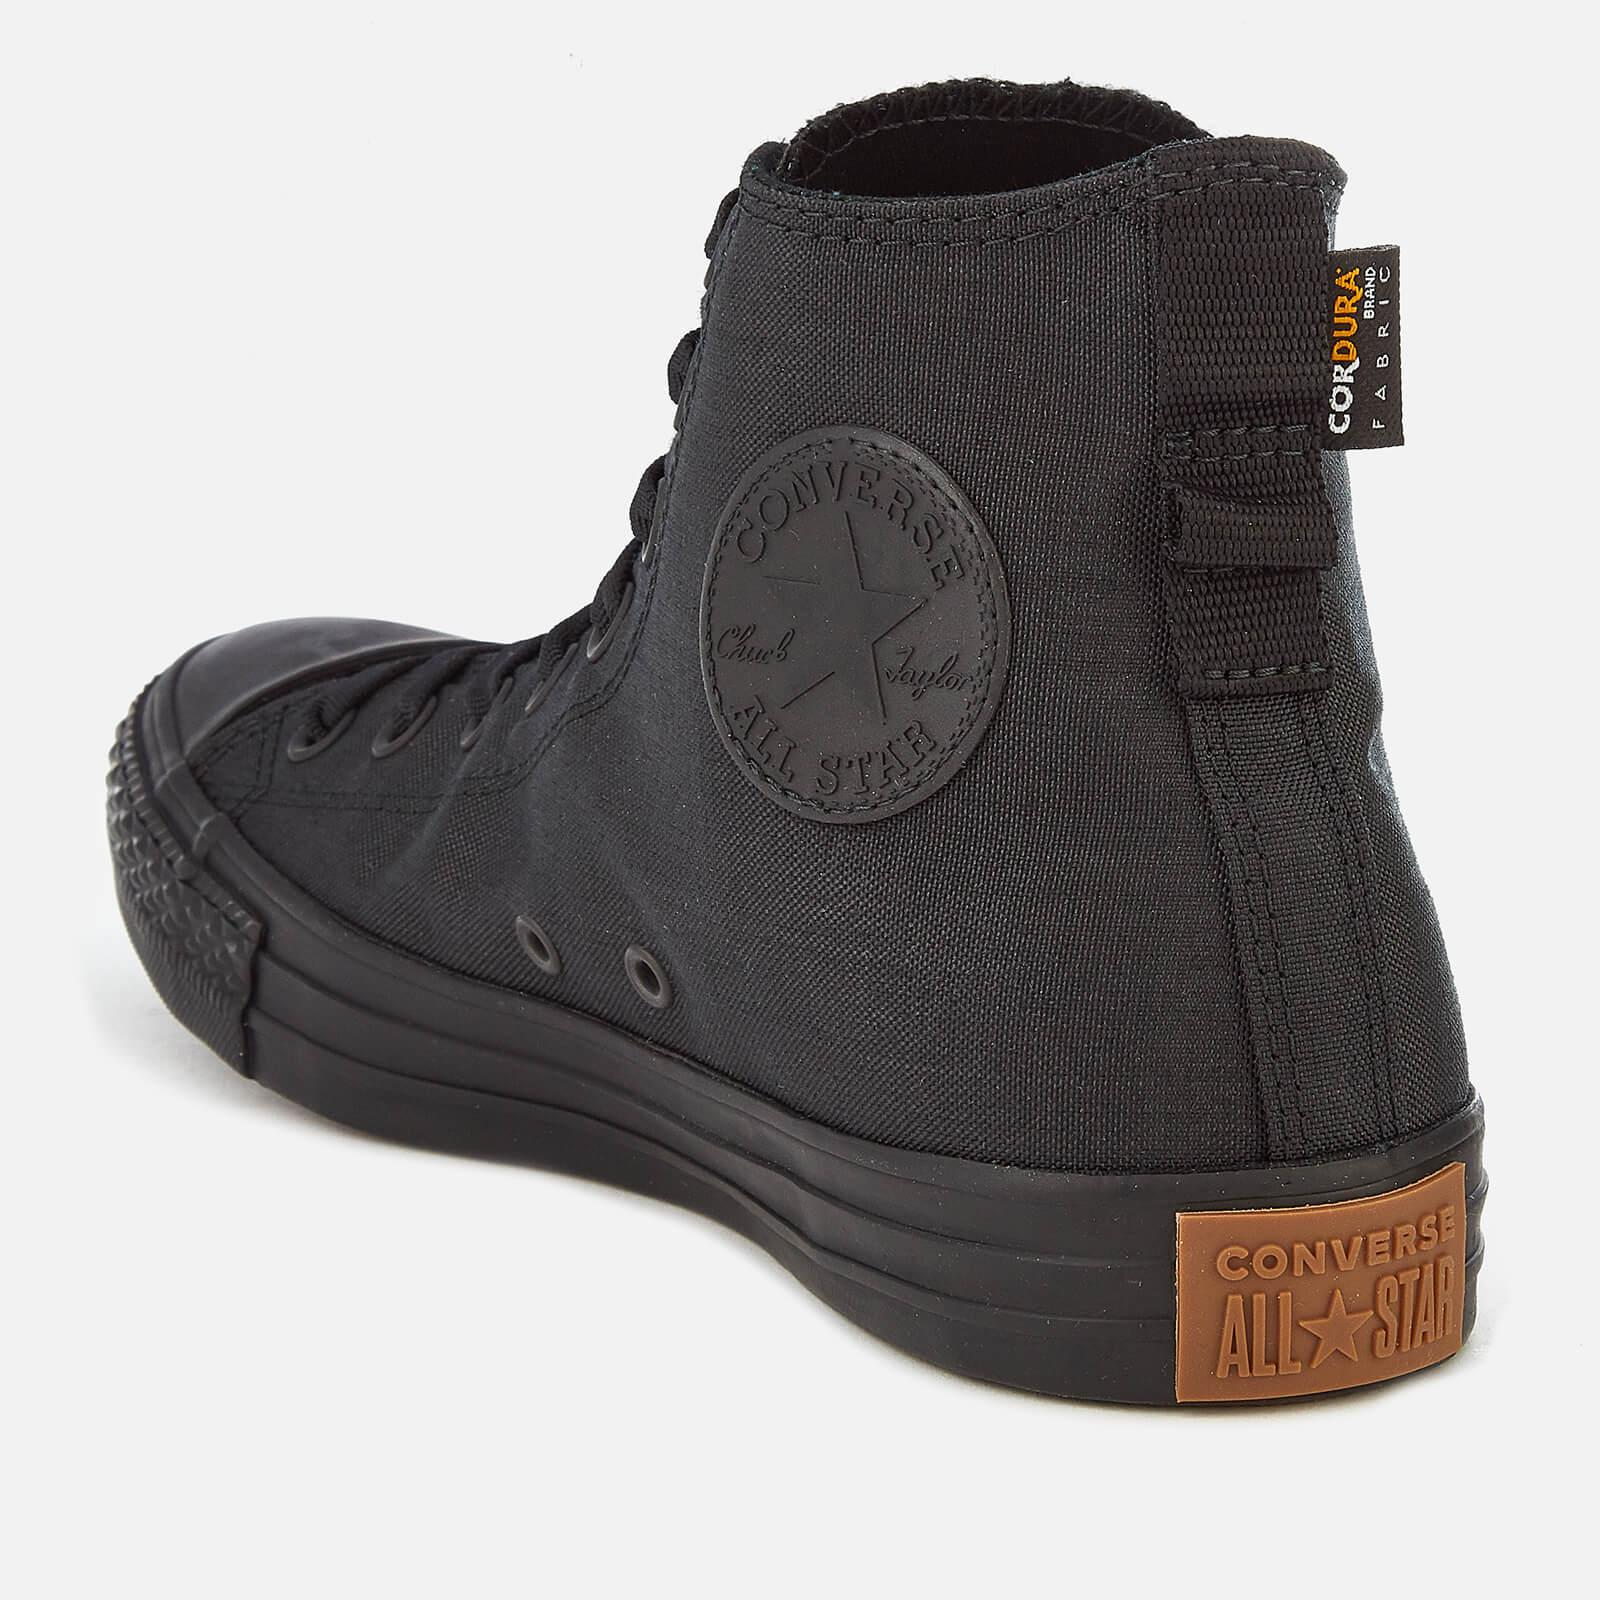 structural disablities lowest discount sale retailer Chuck Taylor All Star Cordura Hi-top Trainers